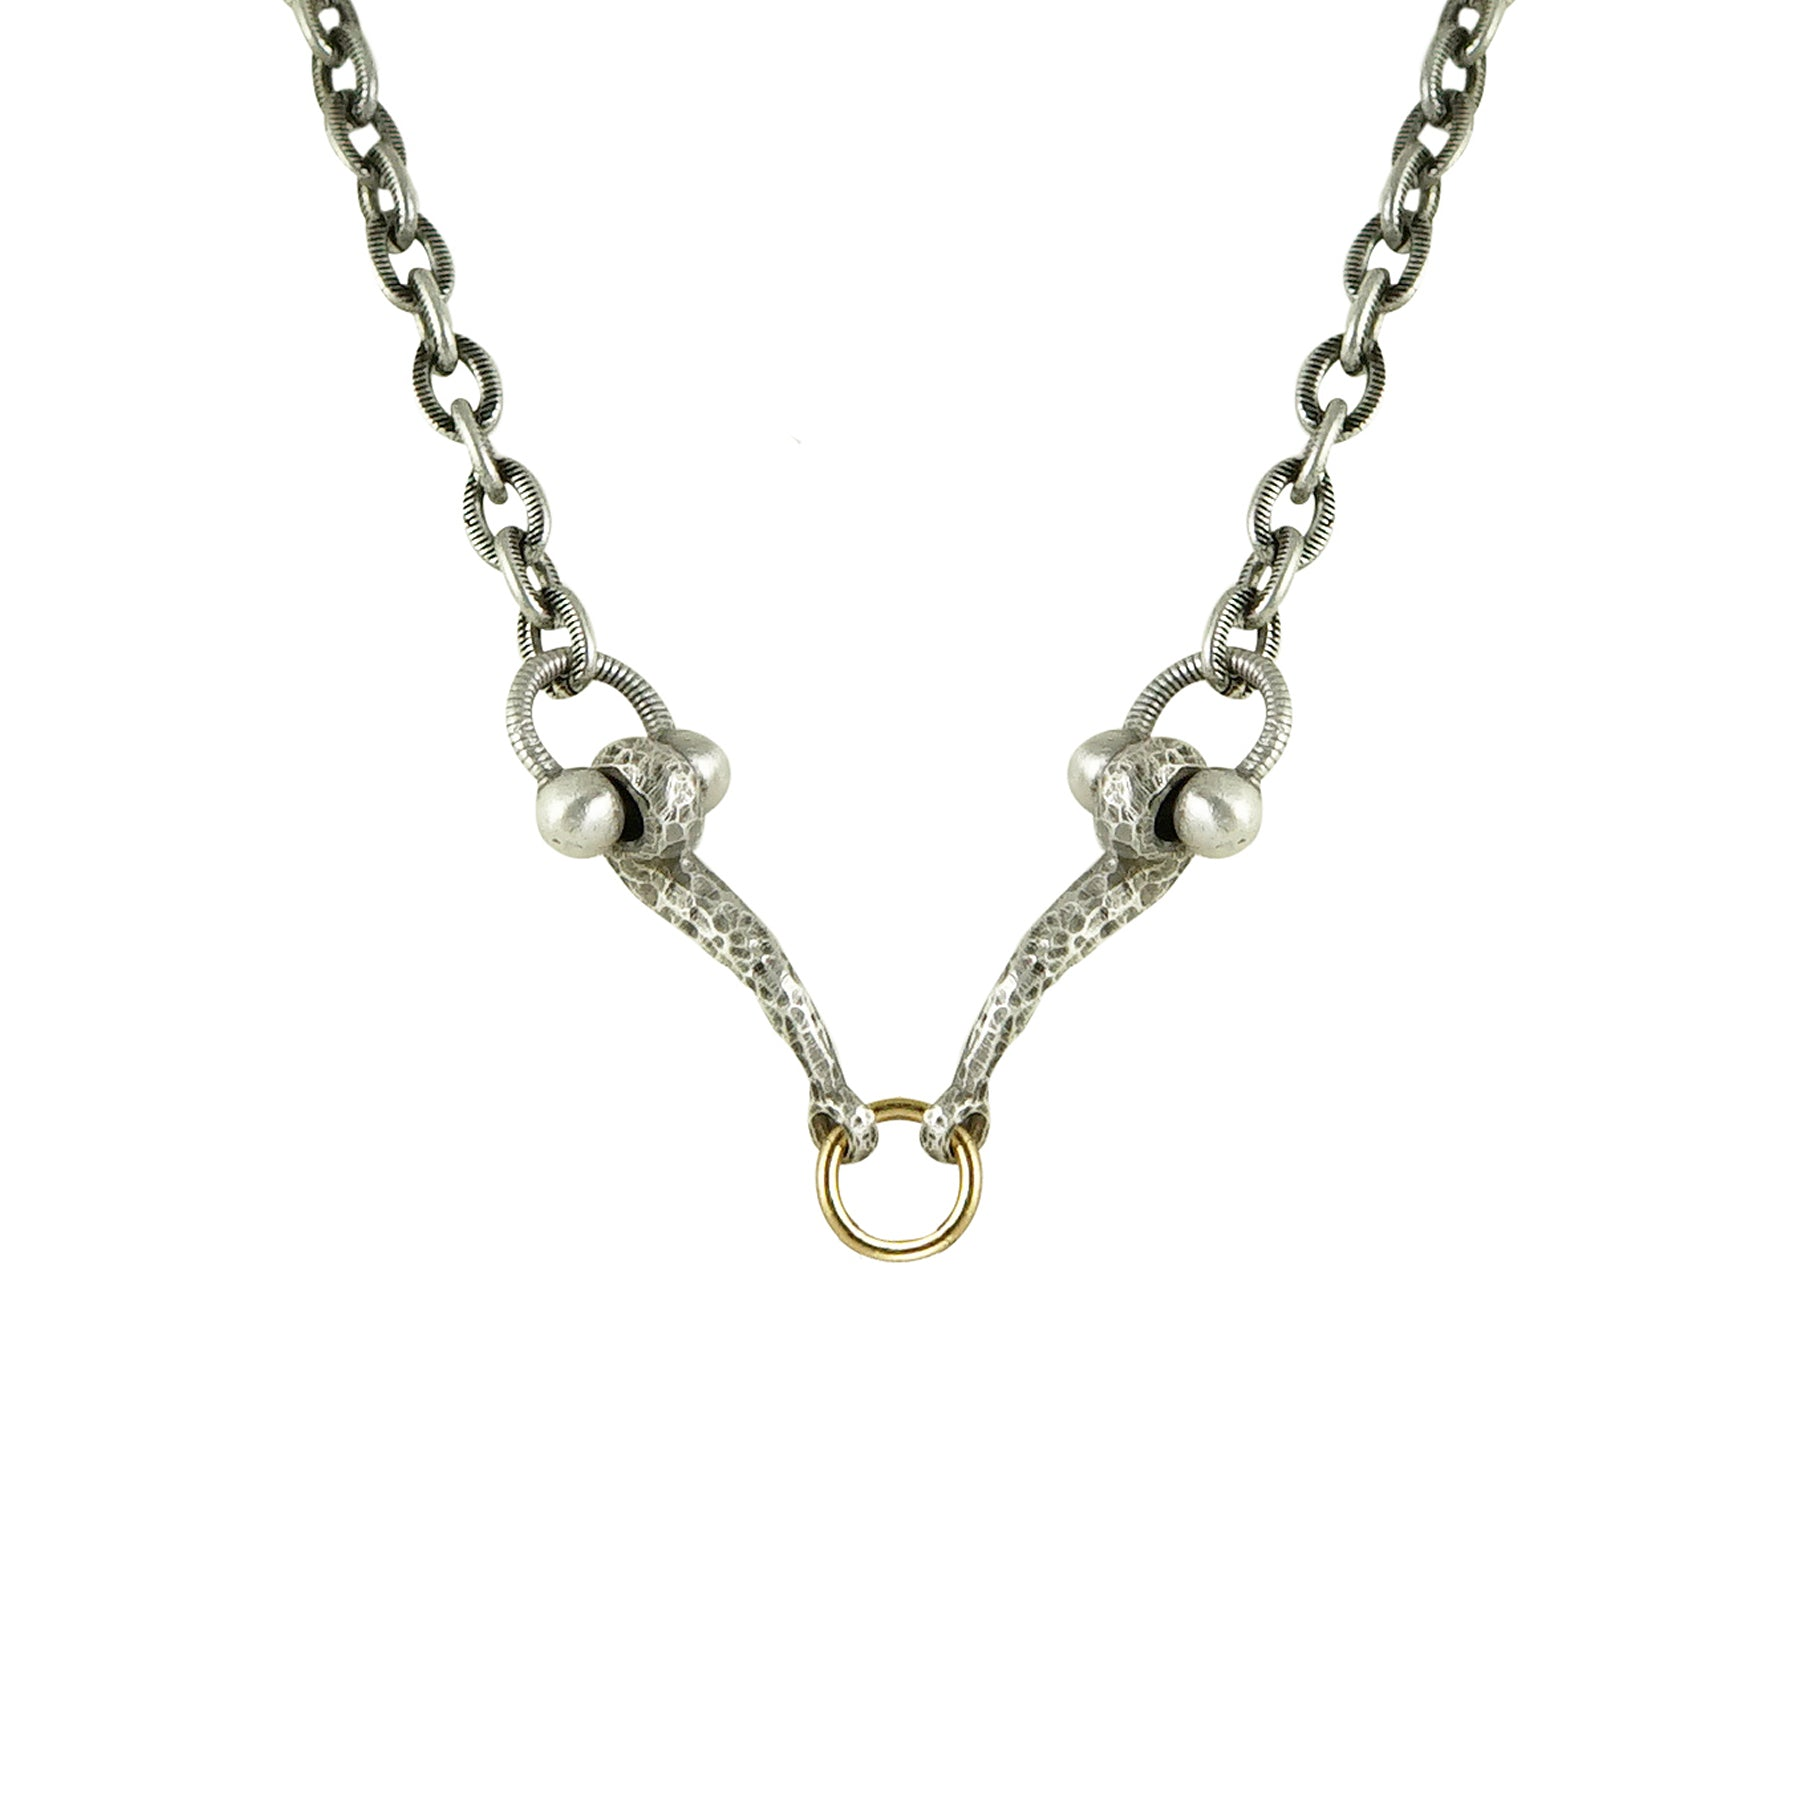 MINI VINTAGE SILVER HORSEBIT & RING NECKLACE